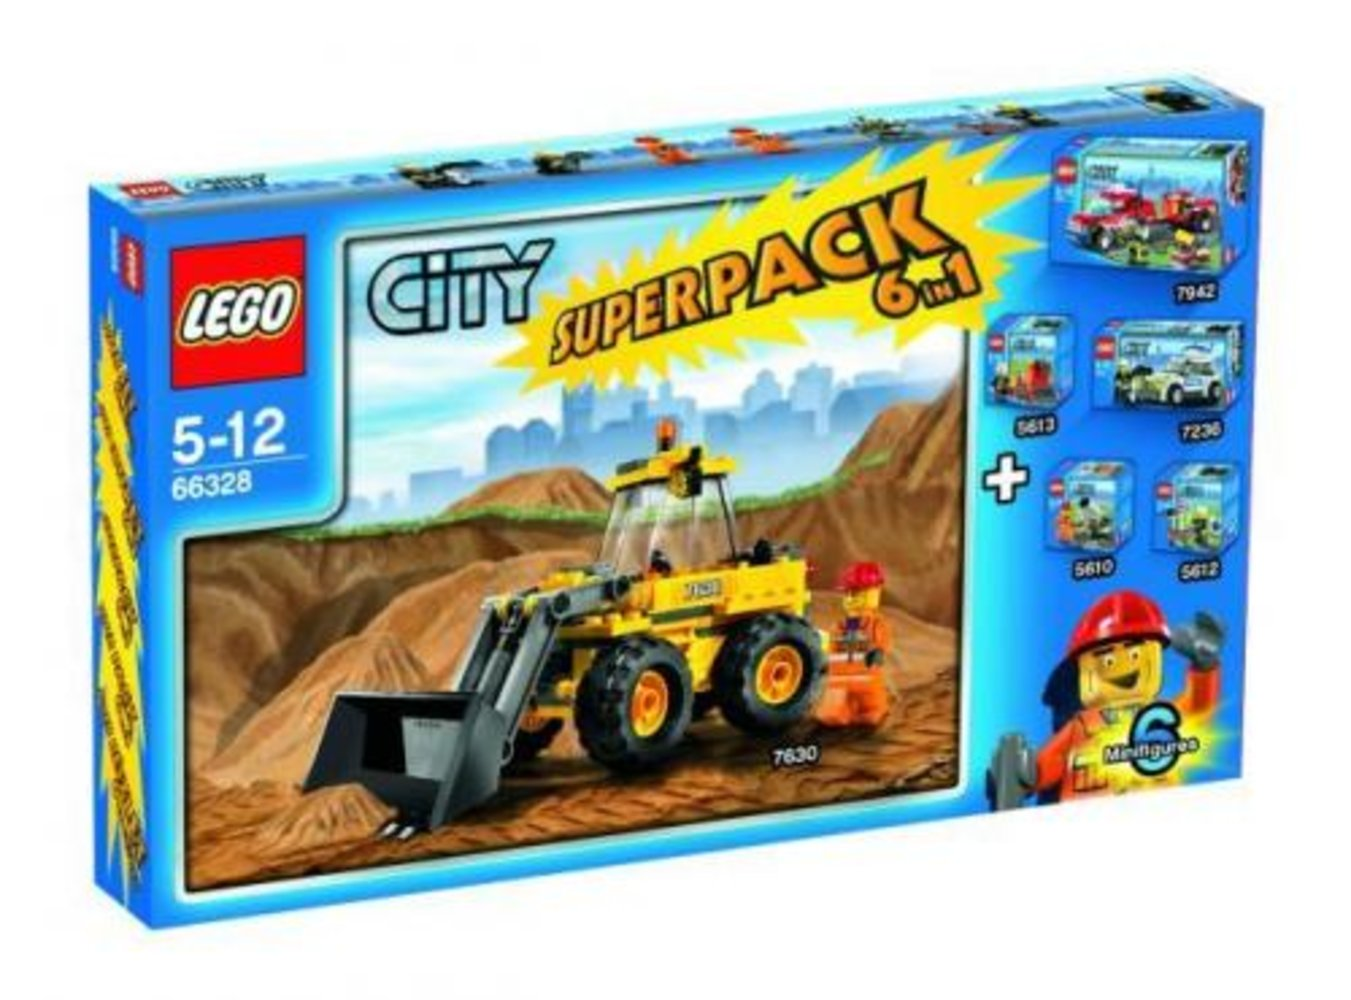 City Super Pack 6 in 1